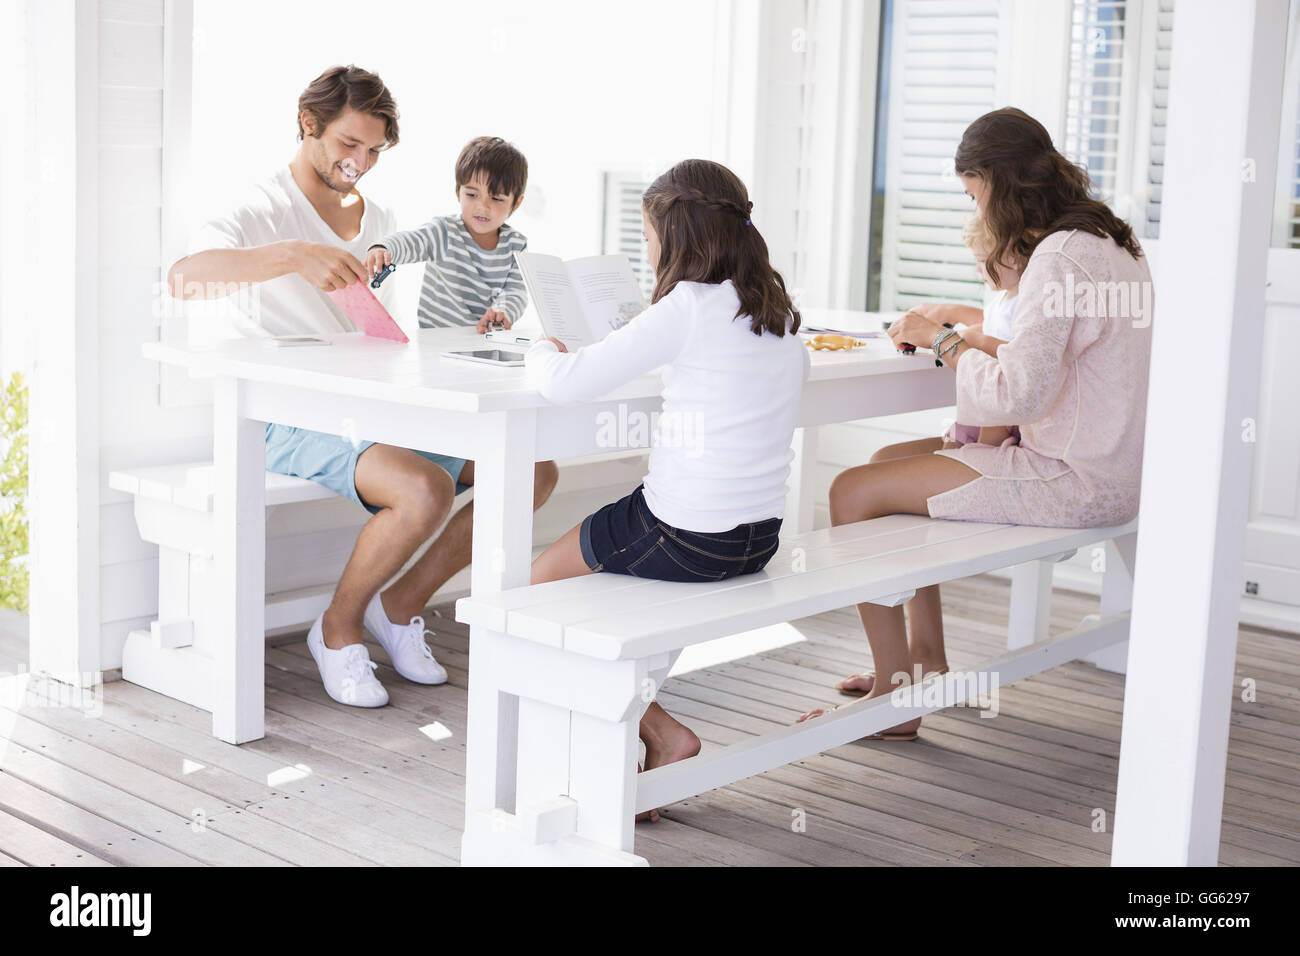 Happy young family sitting together at home - Stock Image